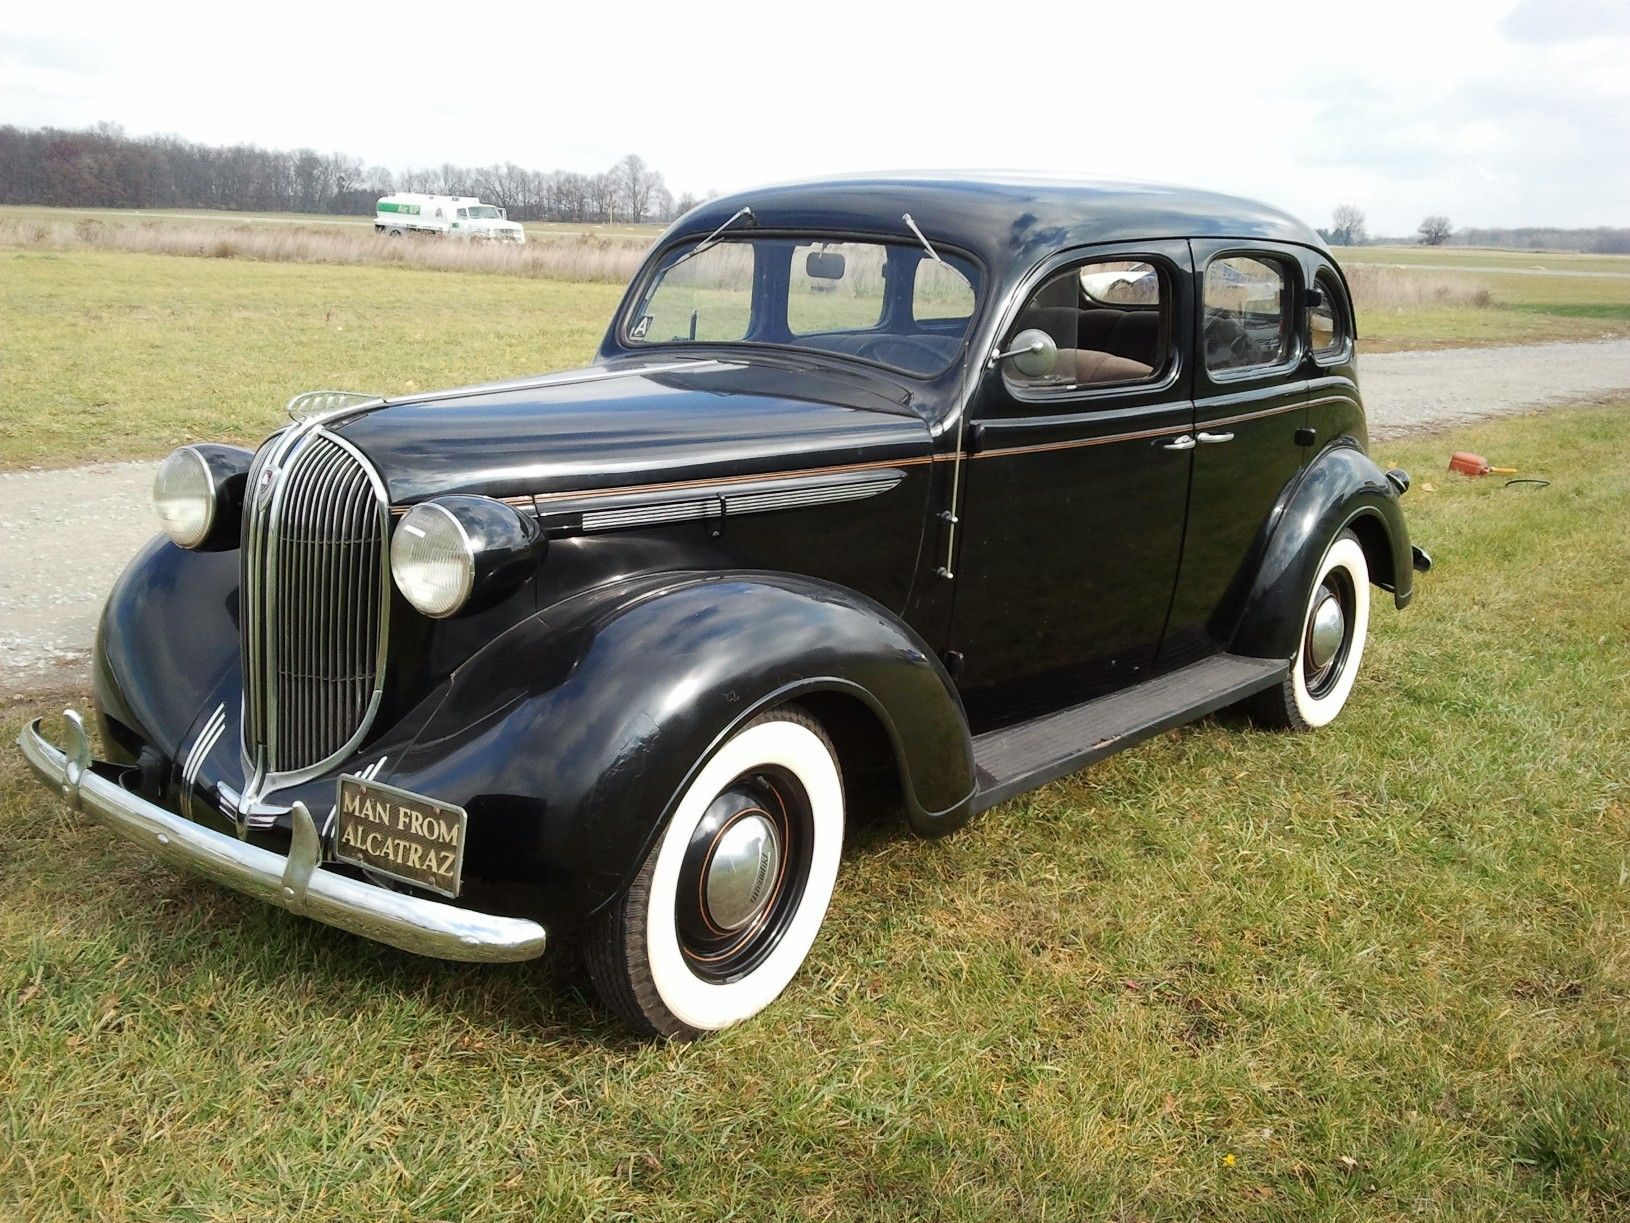 1938 Plymouth P6 Deluxe Four Door Touring Sedan This Is A Super Solid And Straight Car The Body Shows No Signs Of Damage Or Repair I Don Plymouth Sedan Car